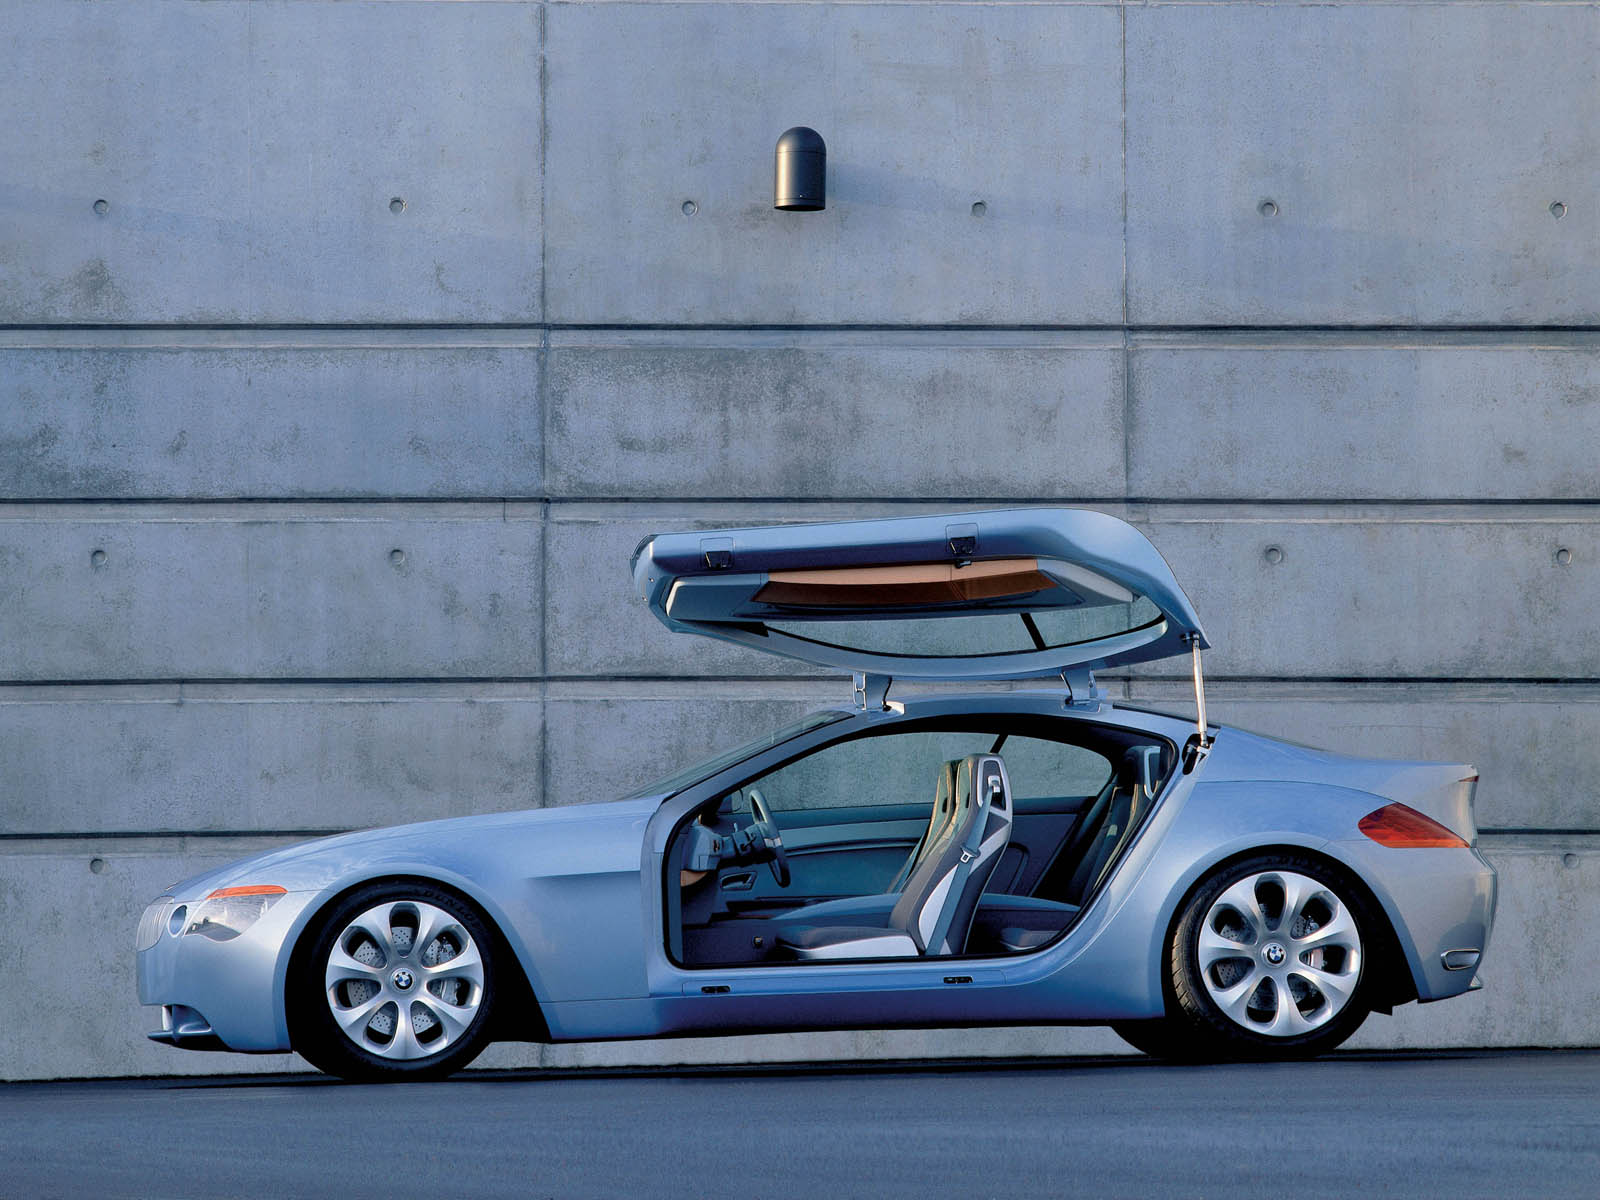 Bmw Z9 Photos Photogallery With 28 Pics Carsbase Com